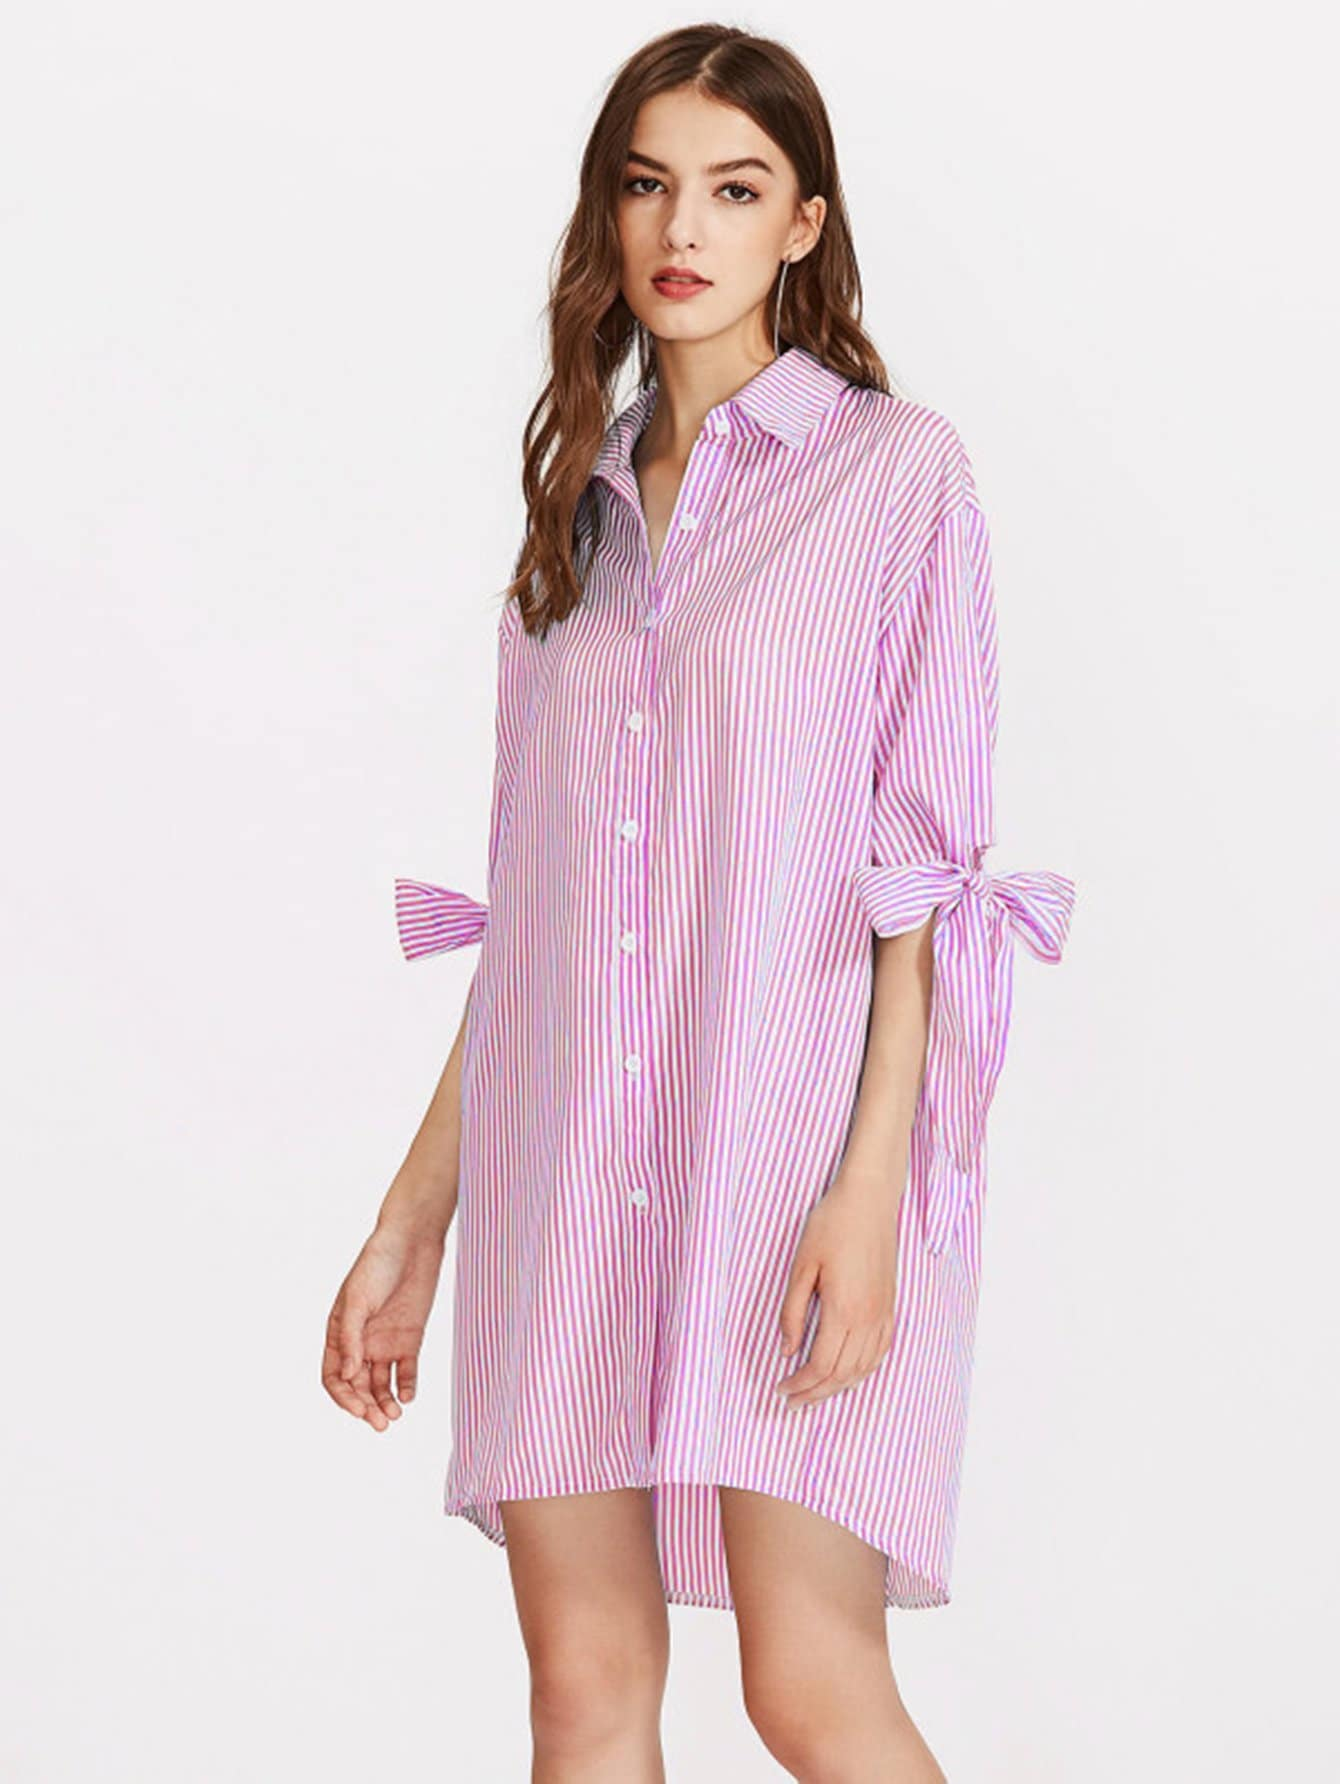 Vertical Striped Bow Tie Cuff Dip Hem Shirt Dress striped side curved dip hem shirt dress